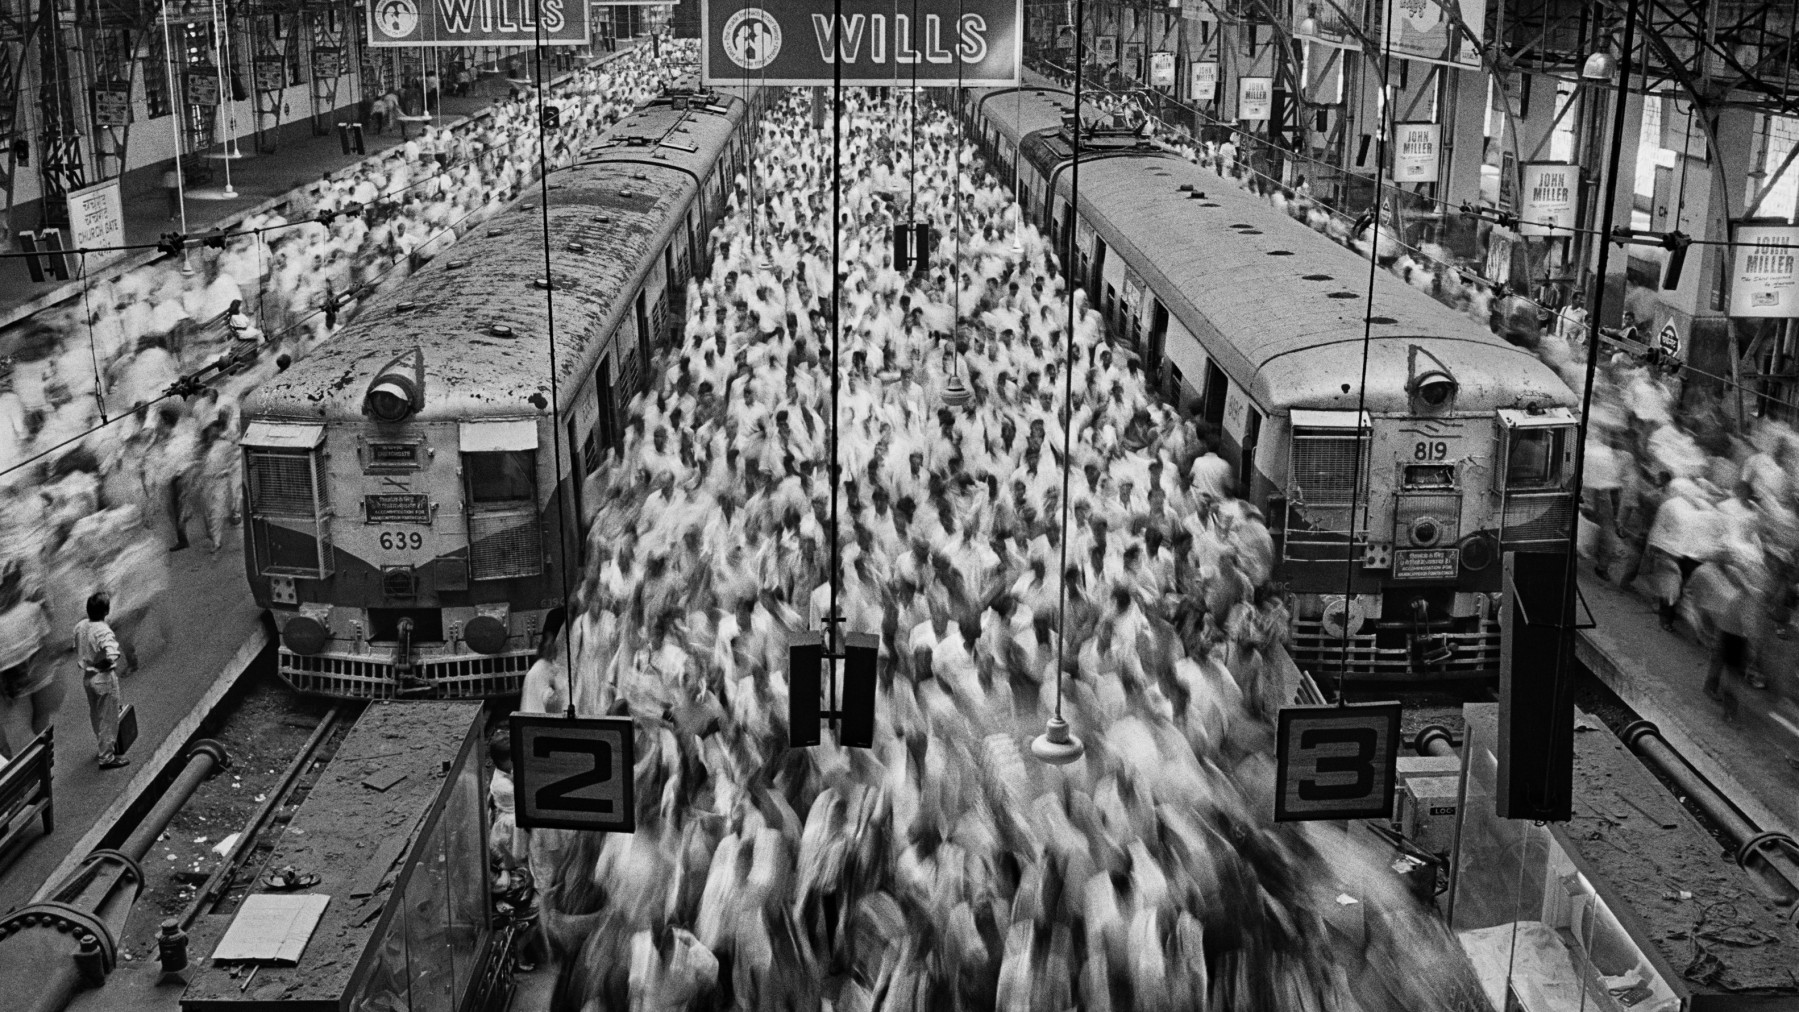 Church Gate Station in Bombay, India during 1995. (Sebastião Salgado/Amazonas Images)